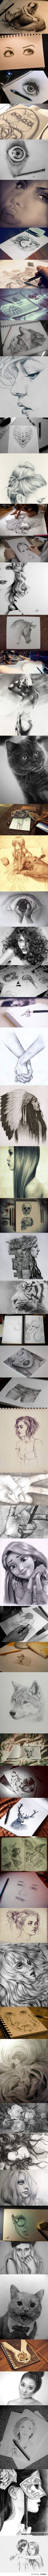 There are a couple of these I do not like, but for the most part, wow, incredible drawings...: